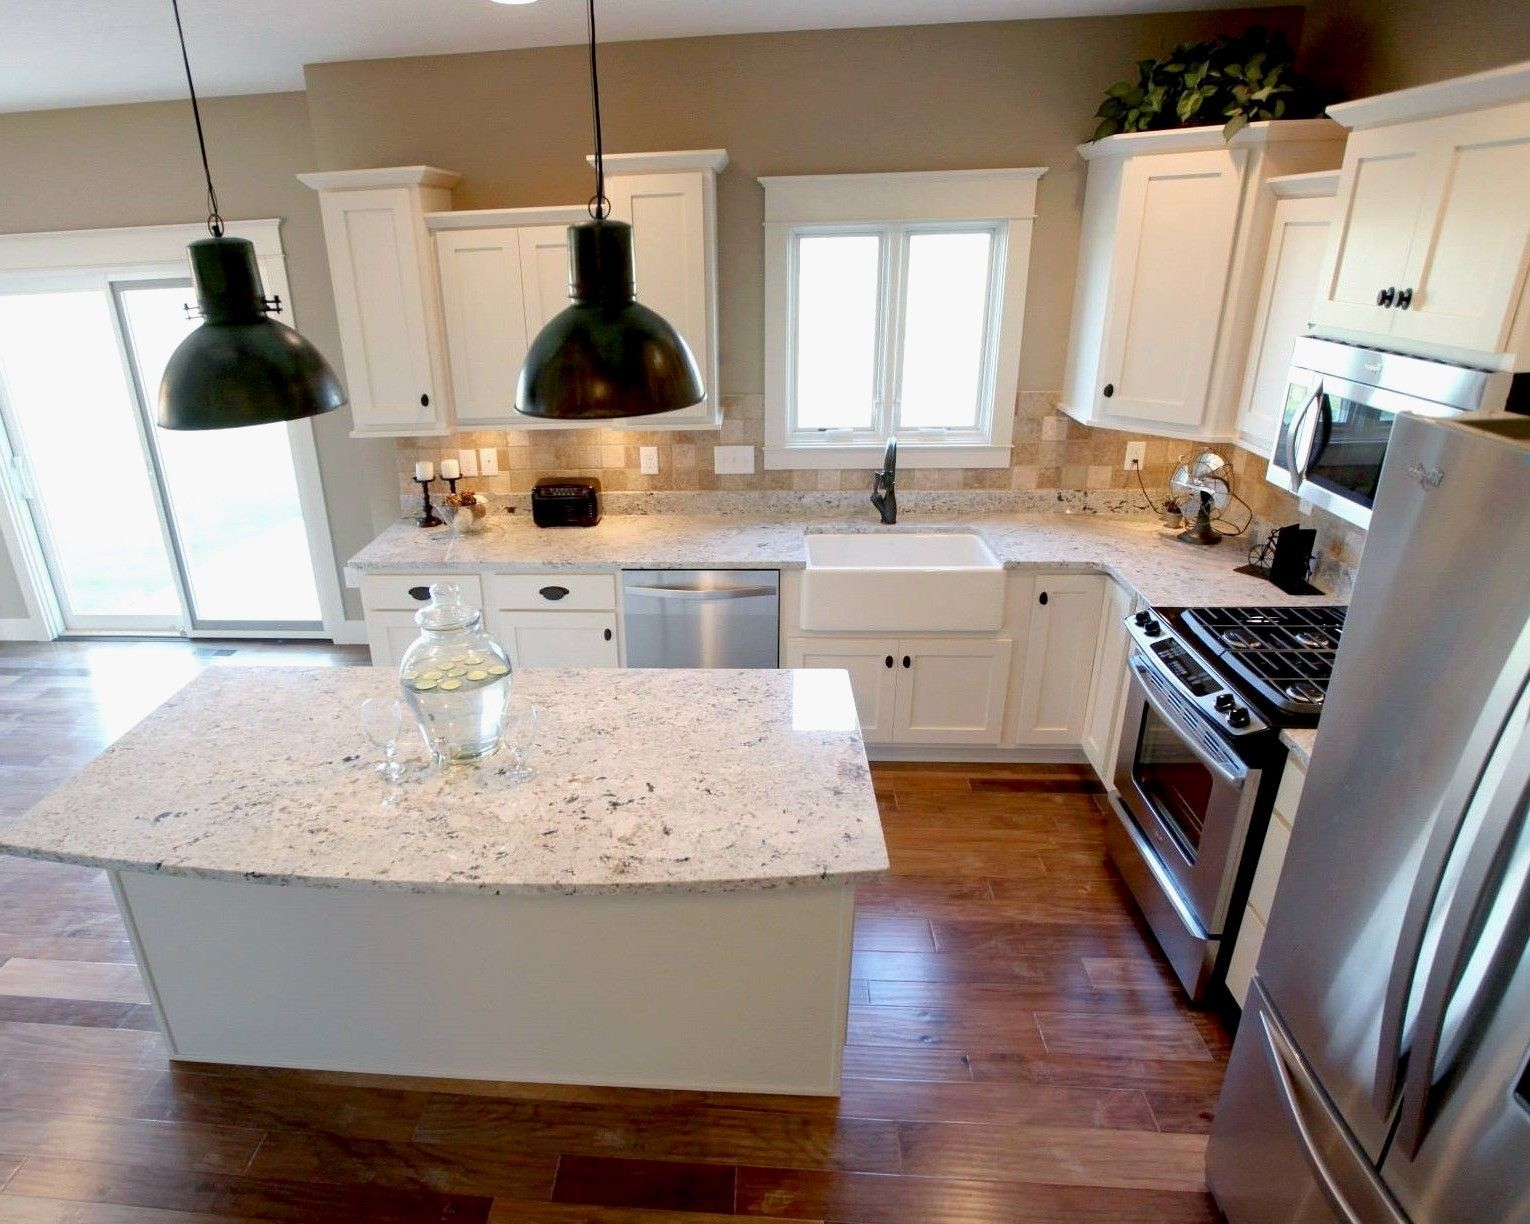 25 fascinating kitchen layout ideas 2020 a guide for kitchen designs small kitchen layouts on kitchen island ideas small layout id=24746